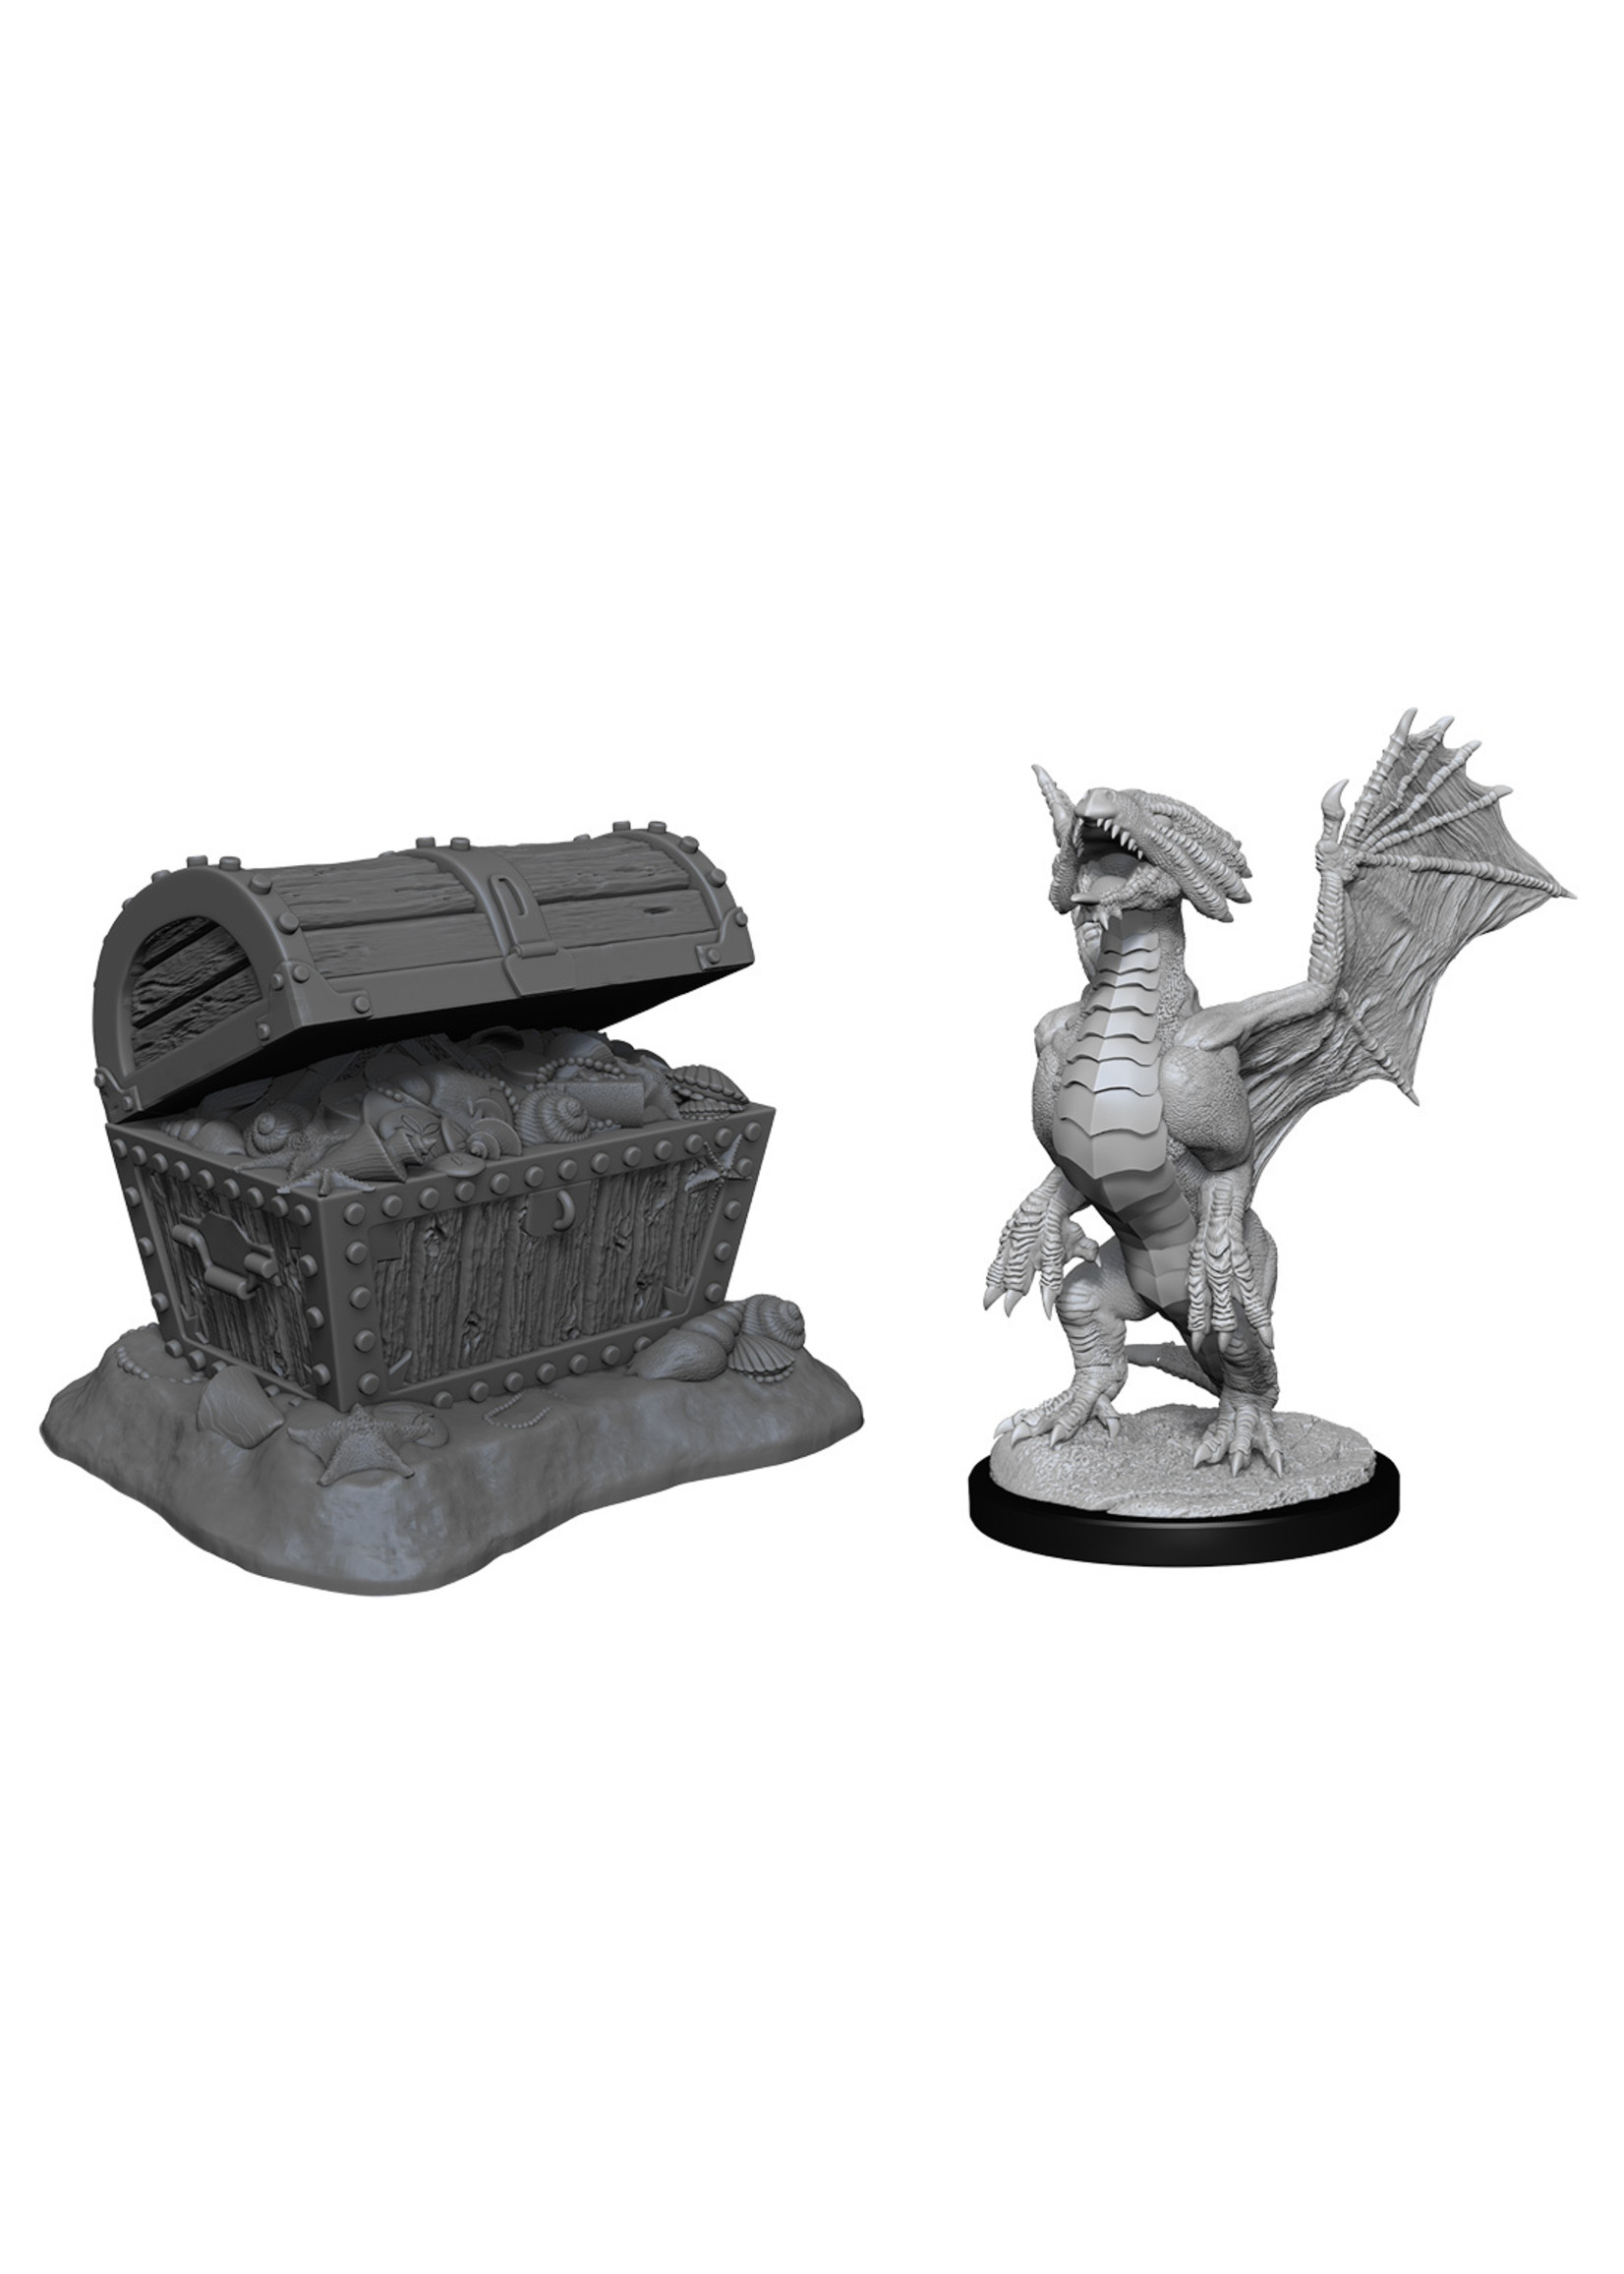 Dungeons & Dragons Nolzur`s Marvelous Unpainted Miniatures: W13 Bronze Dragon Wyrmling & Pile of Sea found Treasure